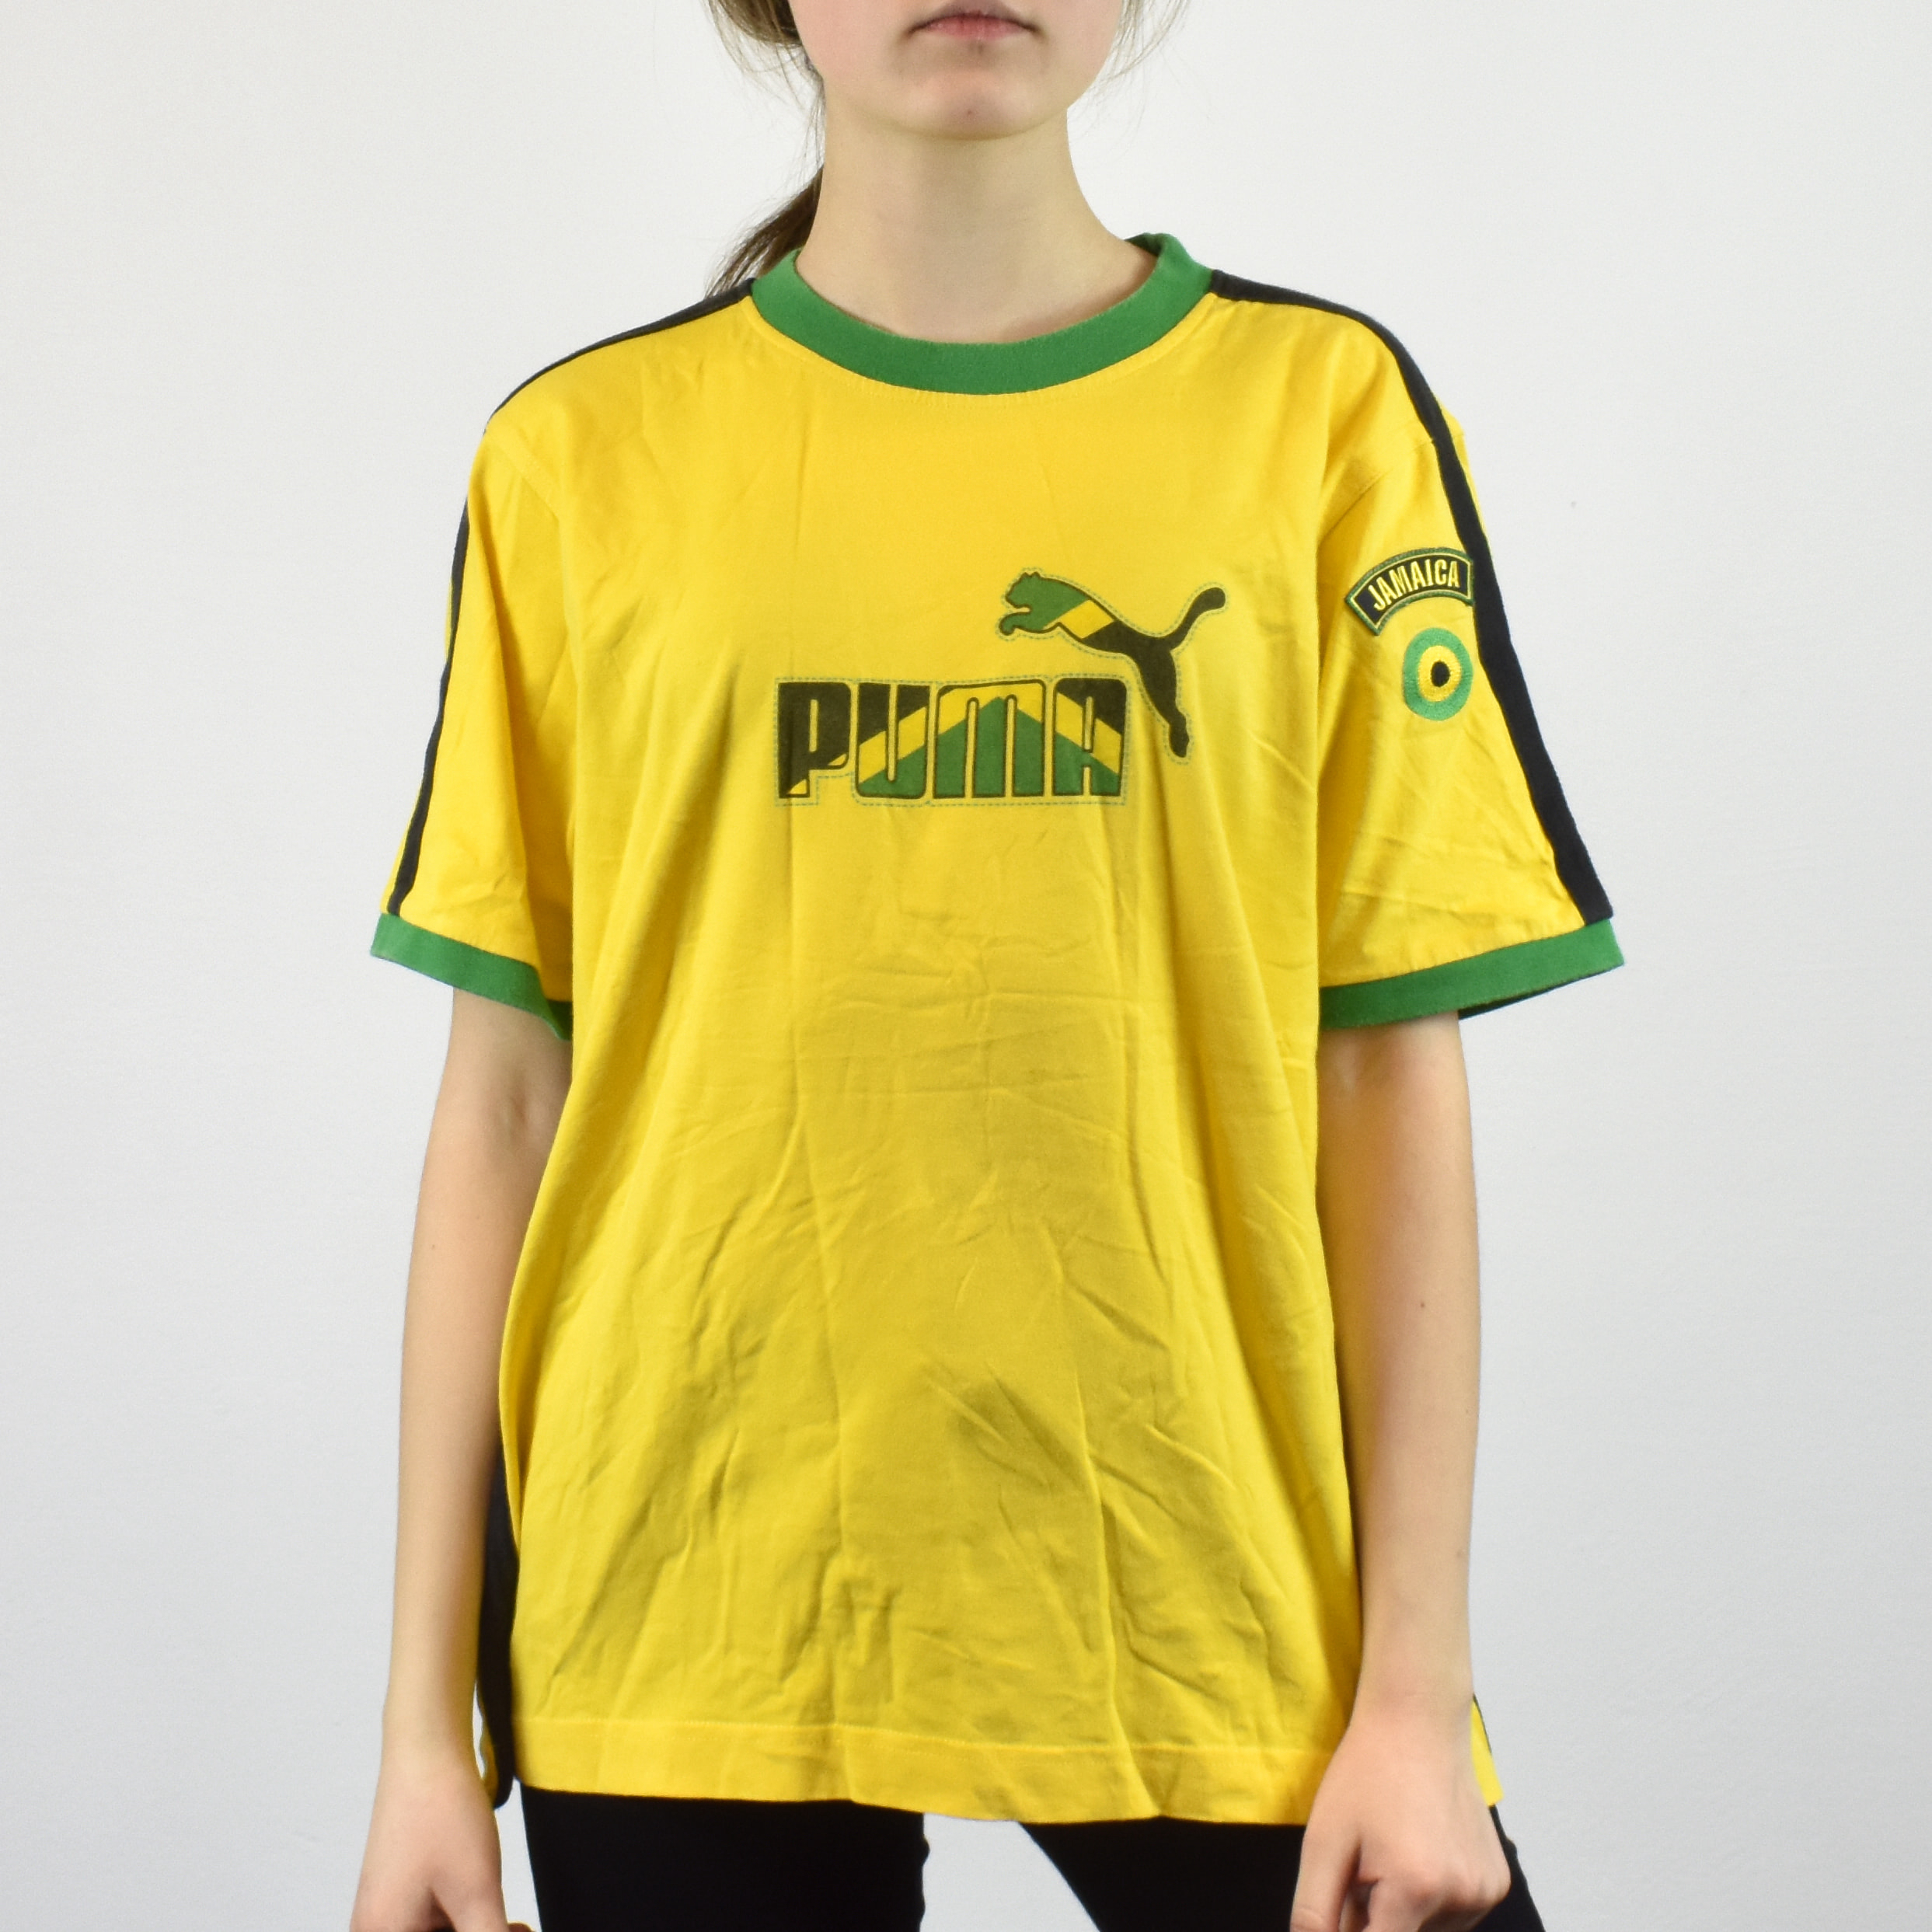 Size Shirt Themed M T Unisex In Vintage Jamaican Flag Puma Tee Colors JlFTcK13